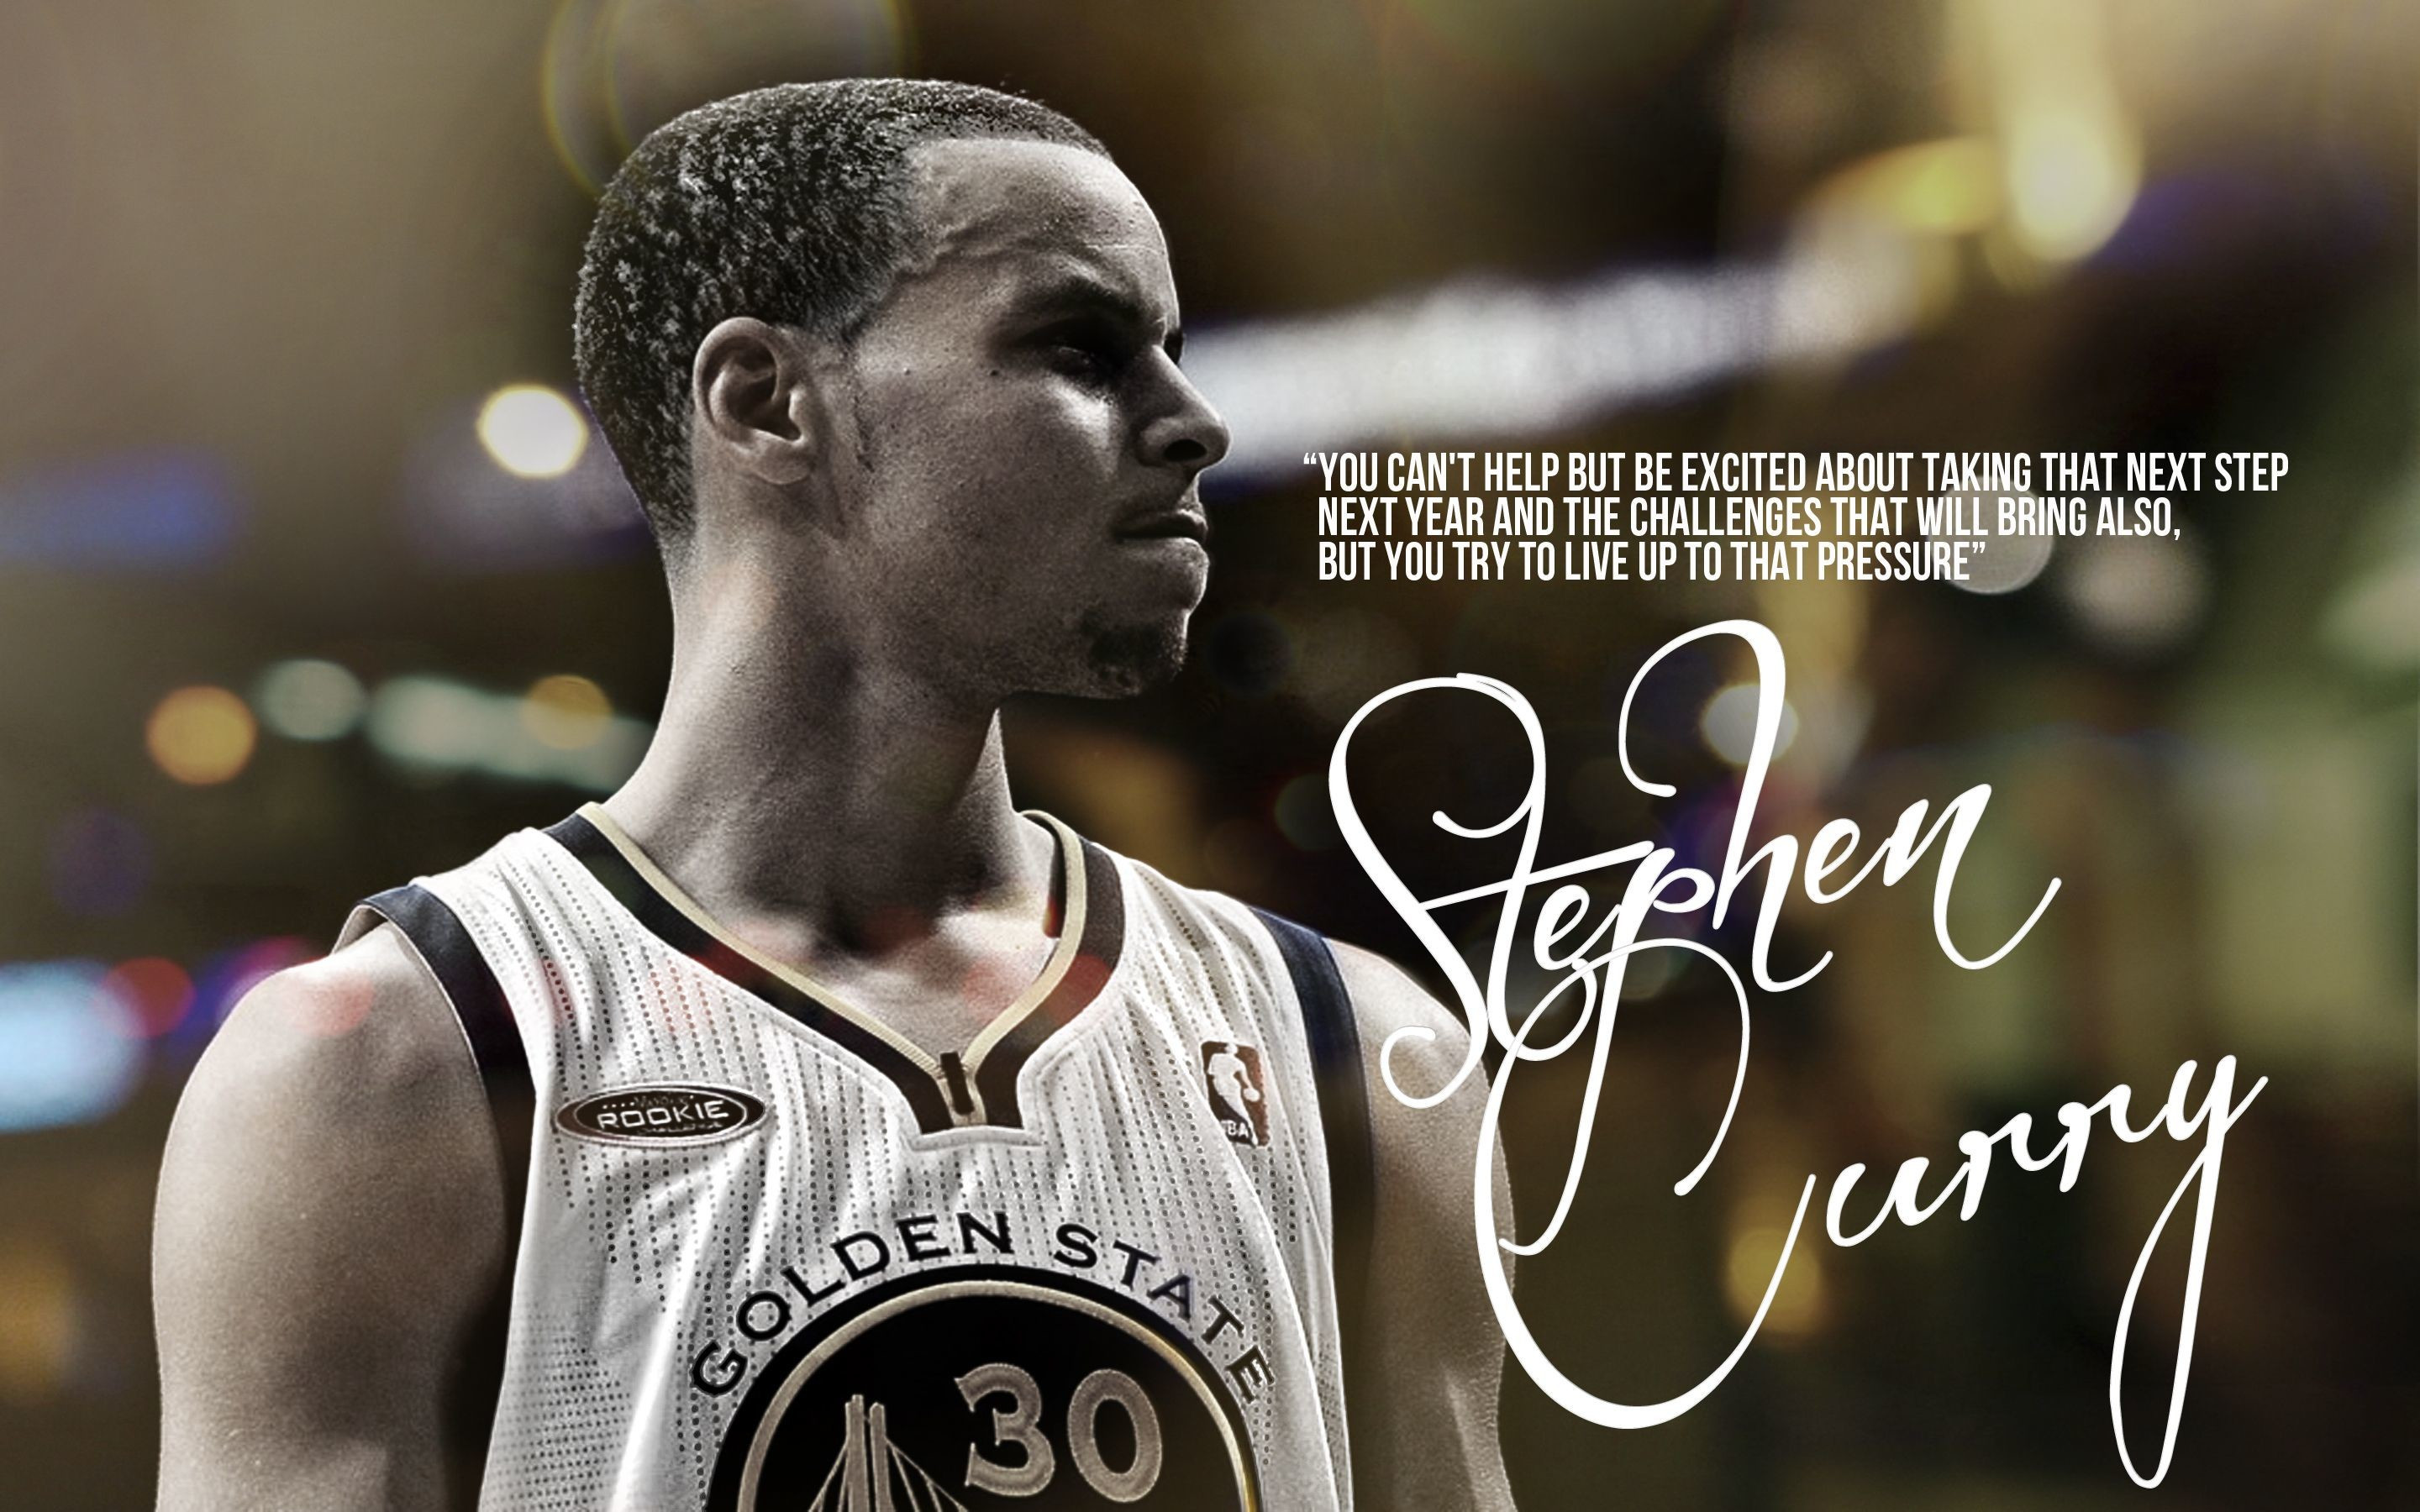 wallpaper.wiki-HD-Stephen-Curry-Android-Images-PIC-